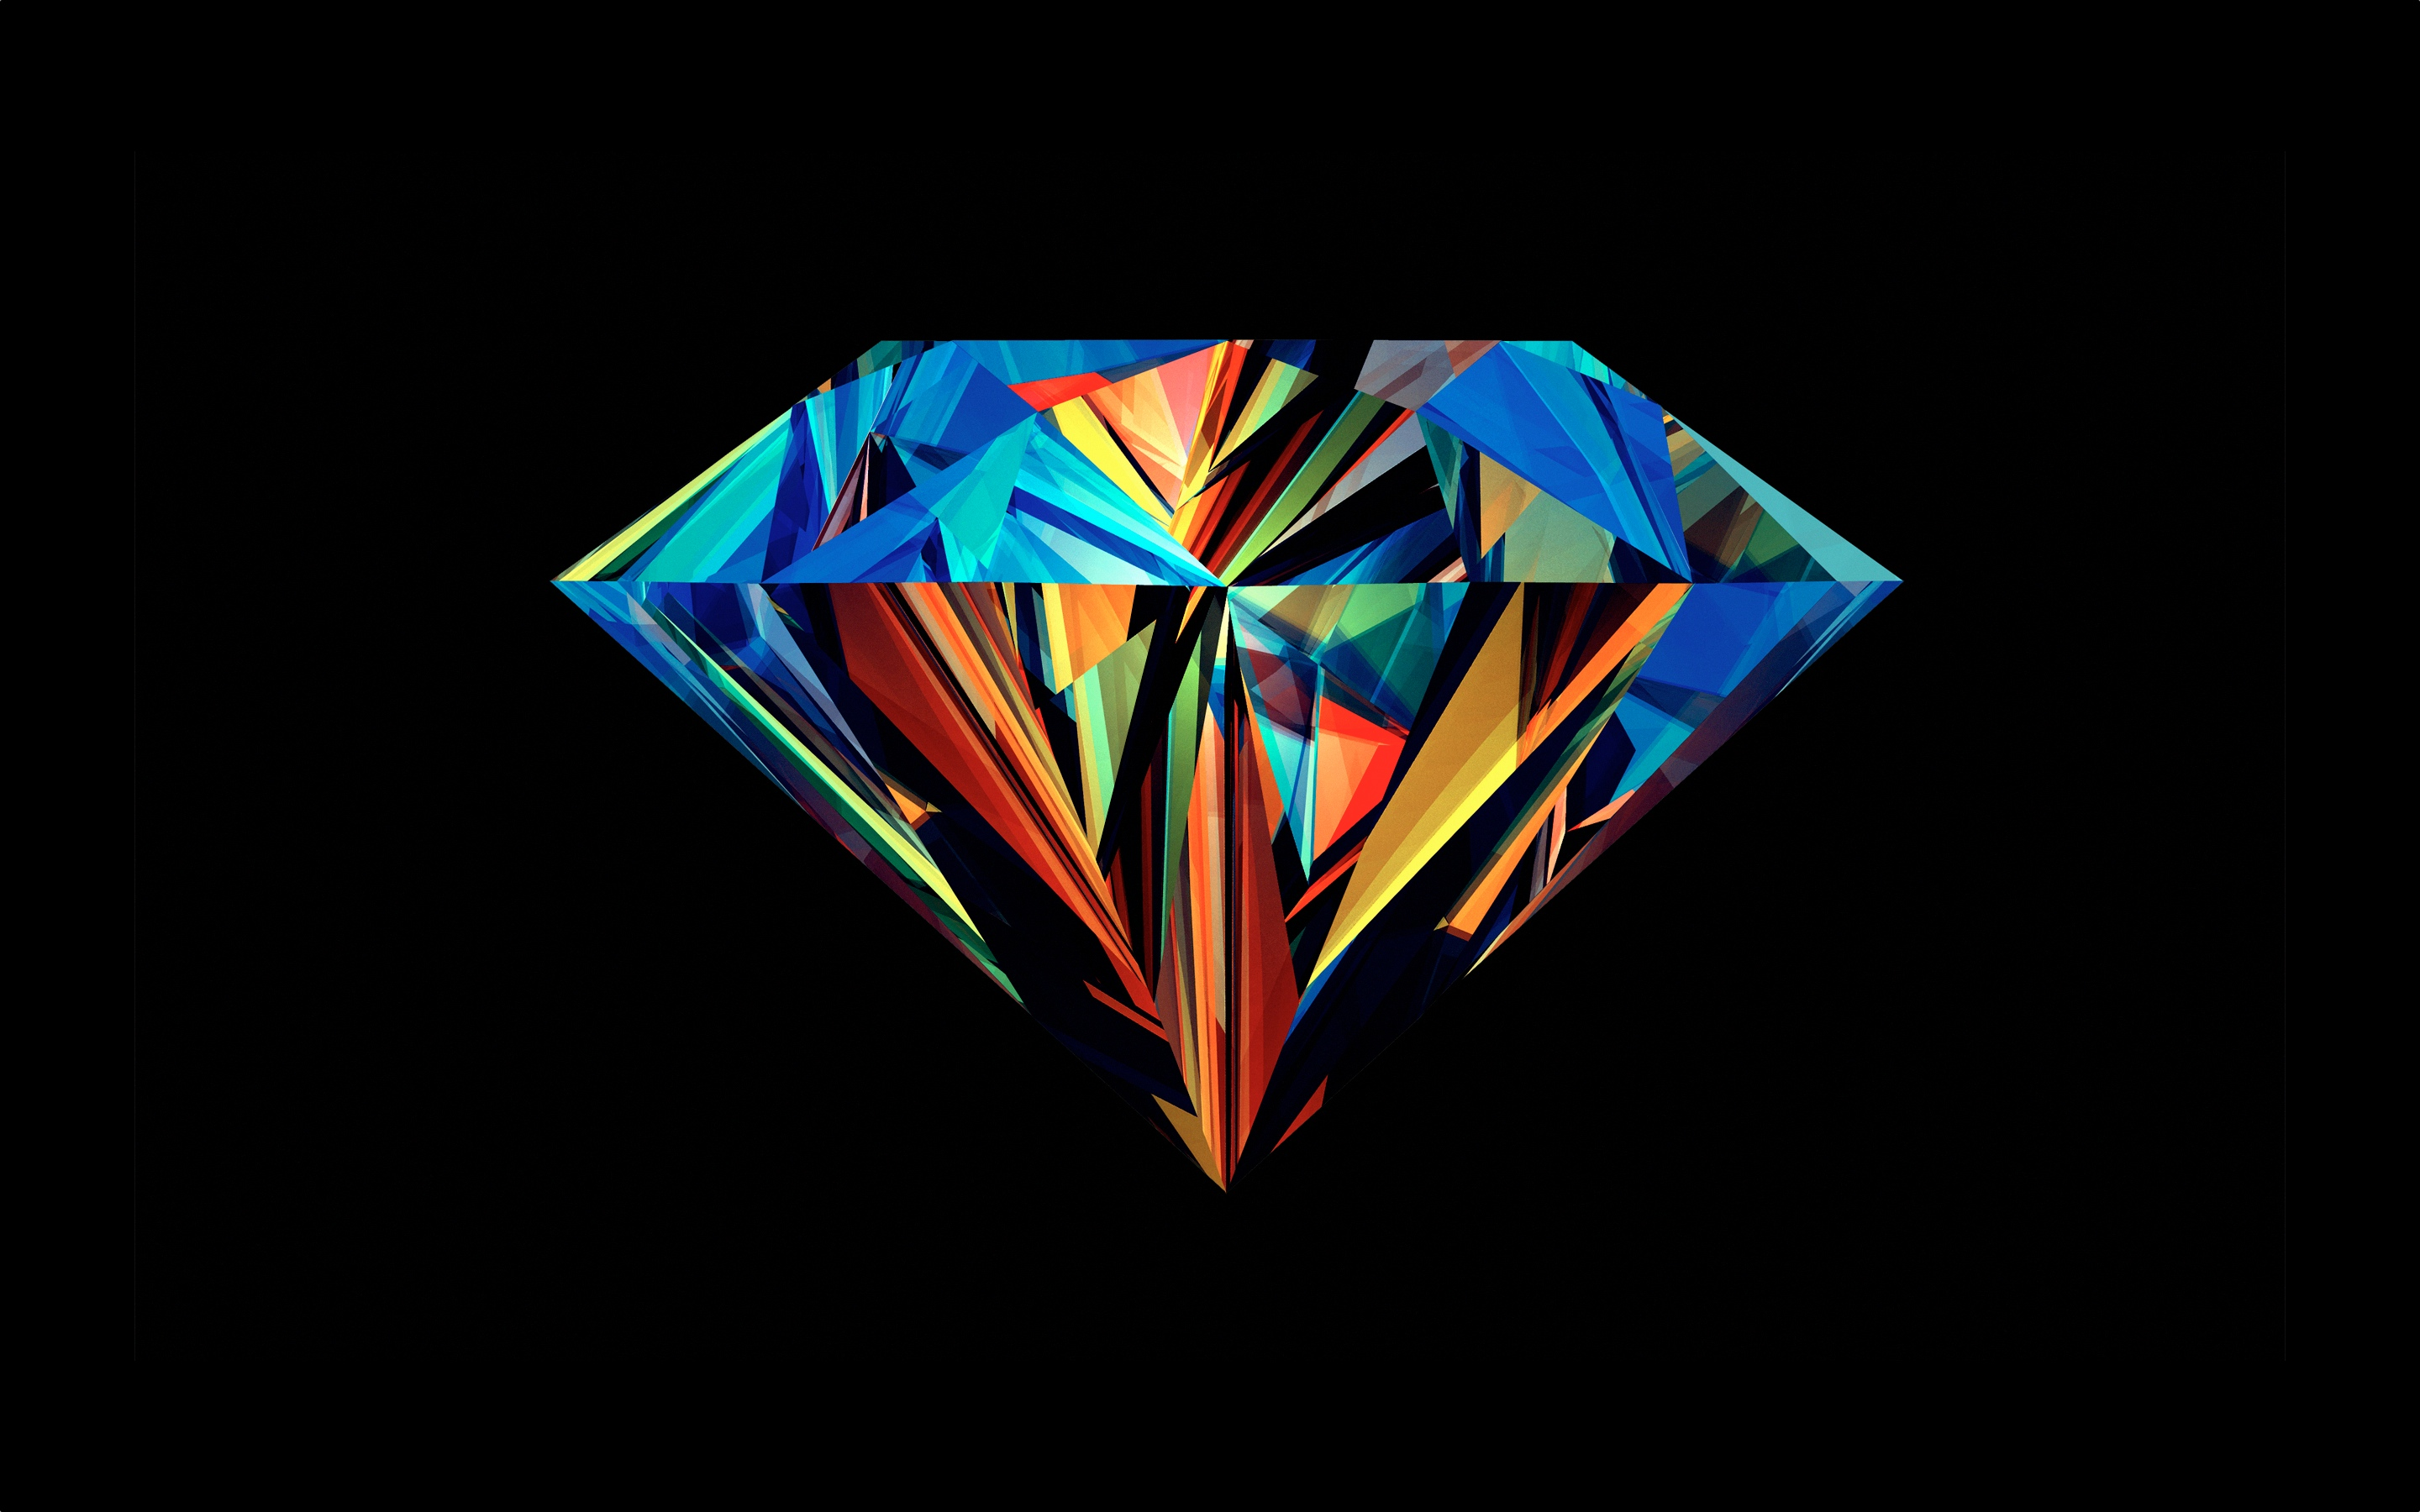 Wallpaper Of Diamond